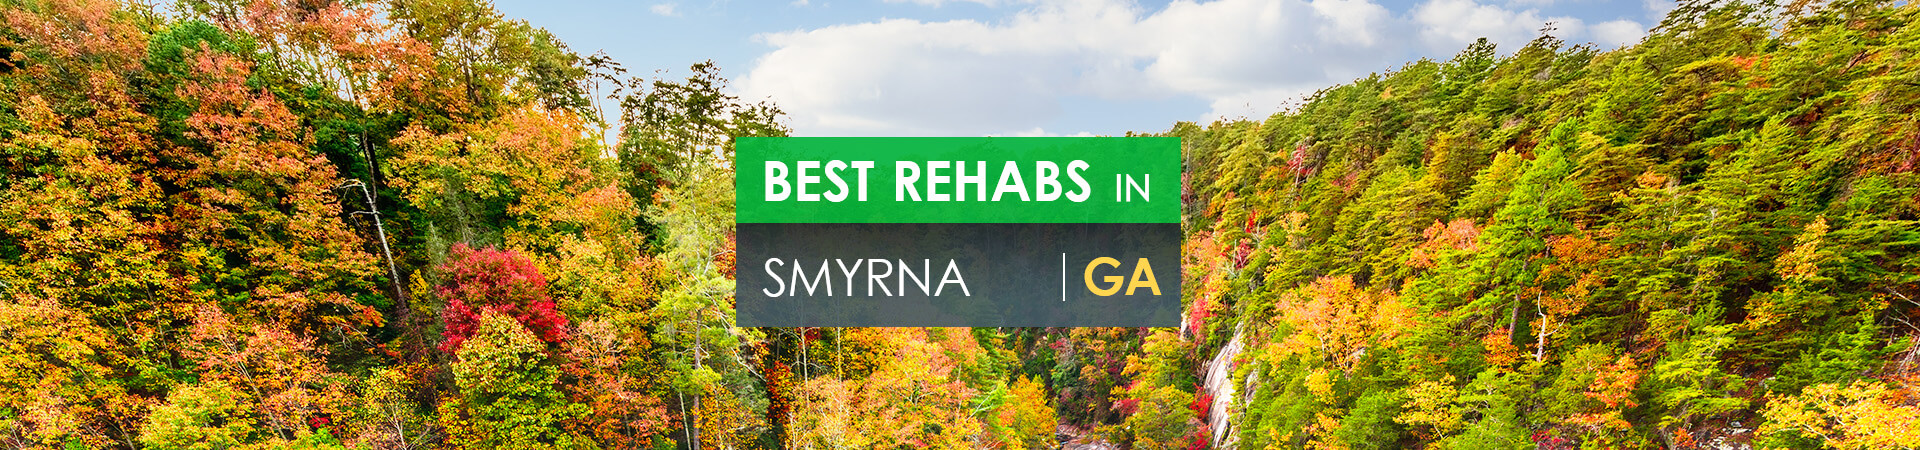 Best rehabs in Smyrna, GA